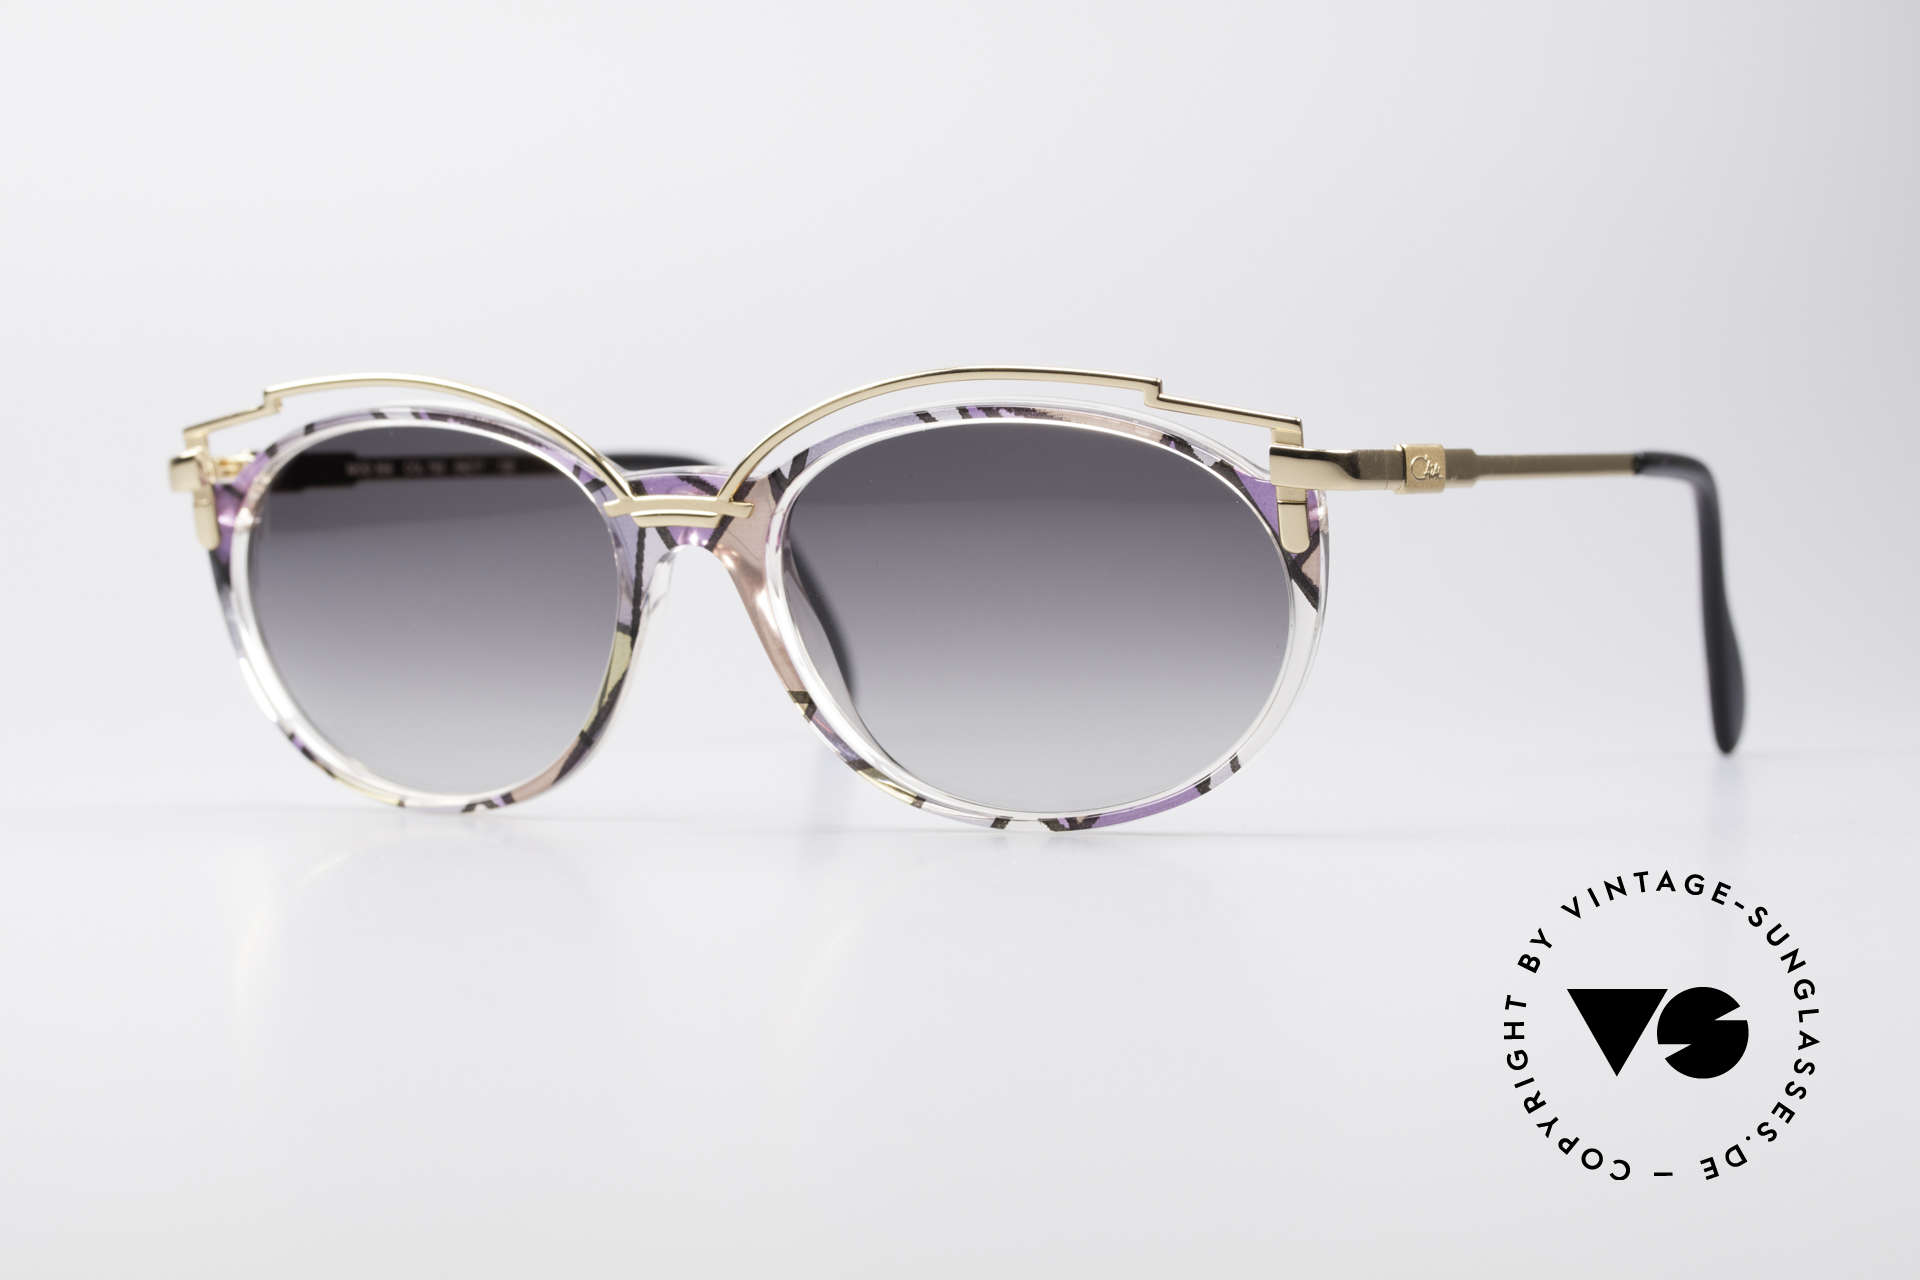 Cazal 358 Vintage 90's Creation Cazal, enchanting VINTAGE sunglasses from 1996 by CAZAL, Made for Women